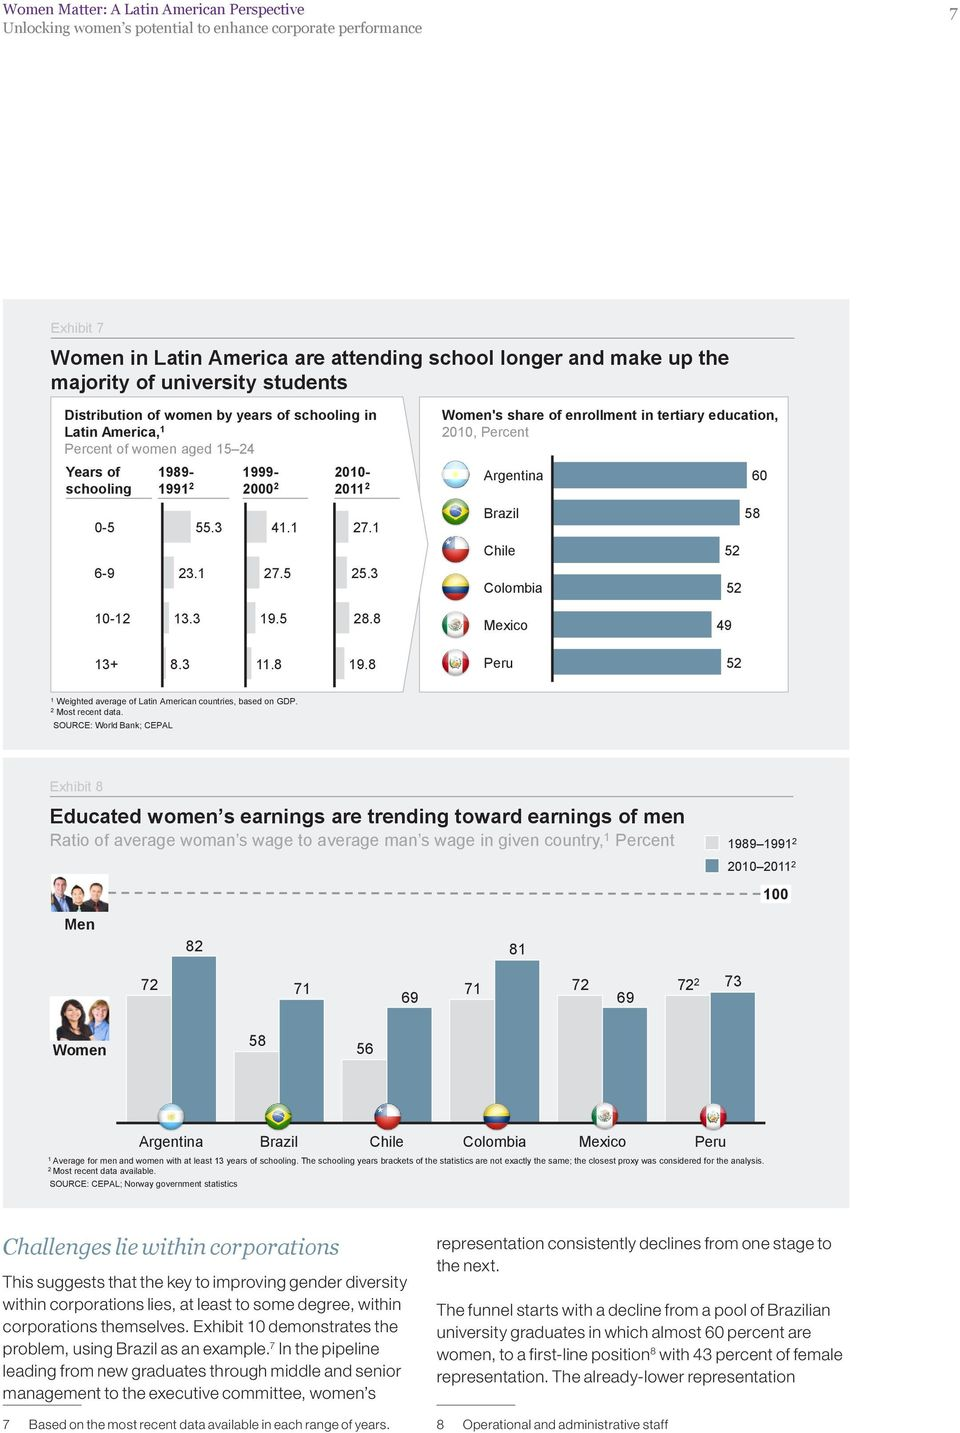 1 25.3 Women's share of enrollment in tertiary education, 2010, Percent Argentina 60 Brazil Chile 52 Colombia 52 58 10-12 13.3 19.5 28.8 Mexico 49 13+ 8.3 11.8 19.